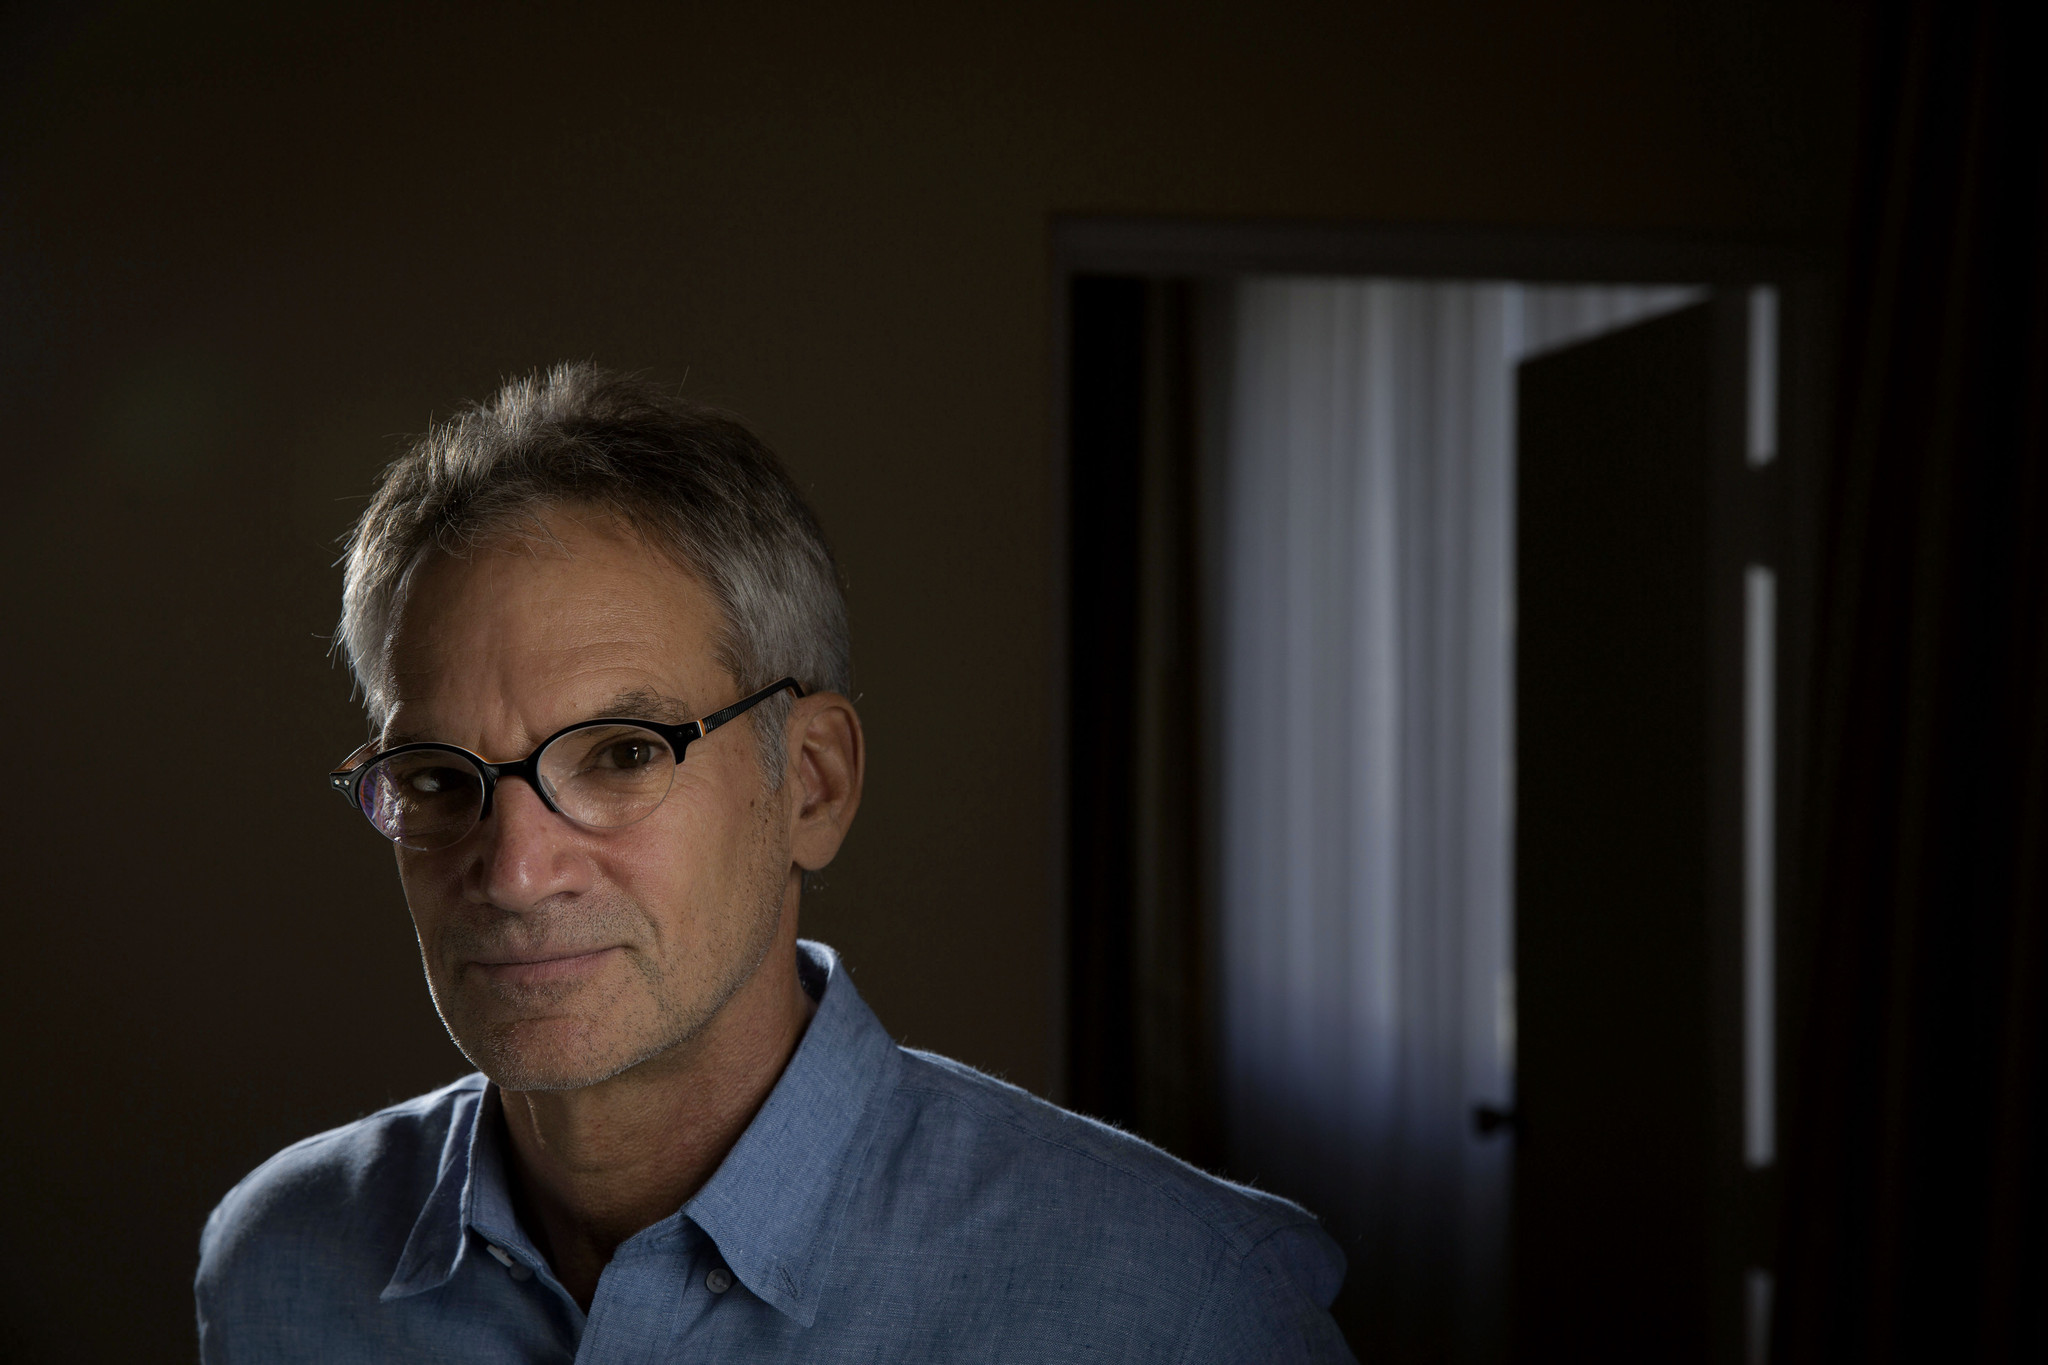 into thin air by jon krakauer essay  into thin air by jon krakauer essay